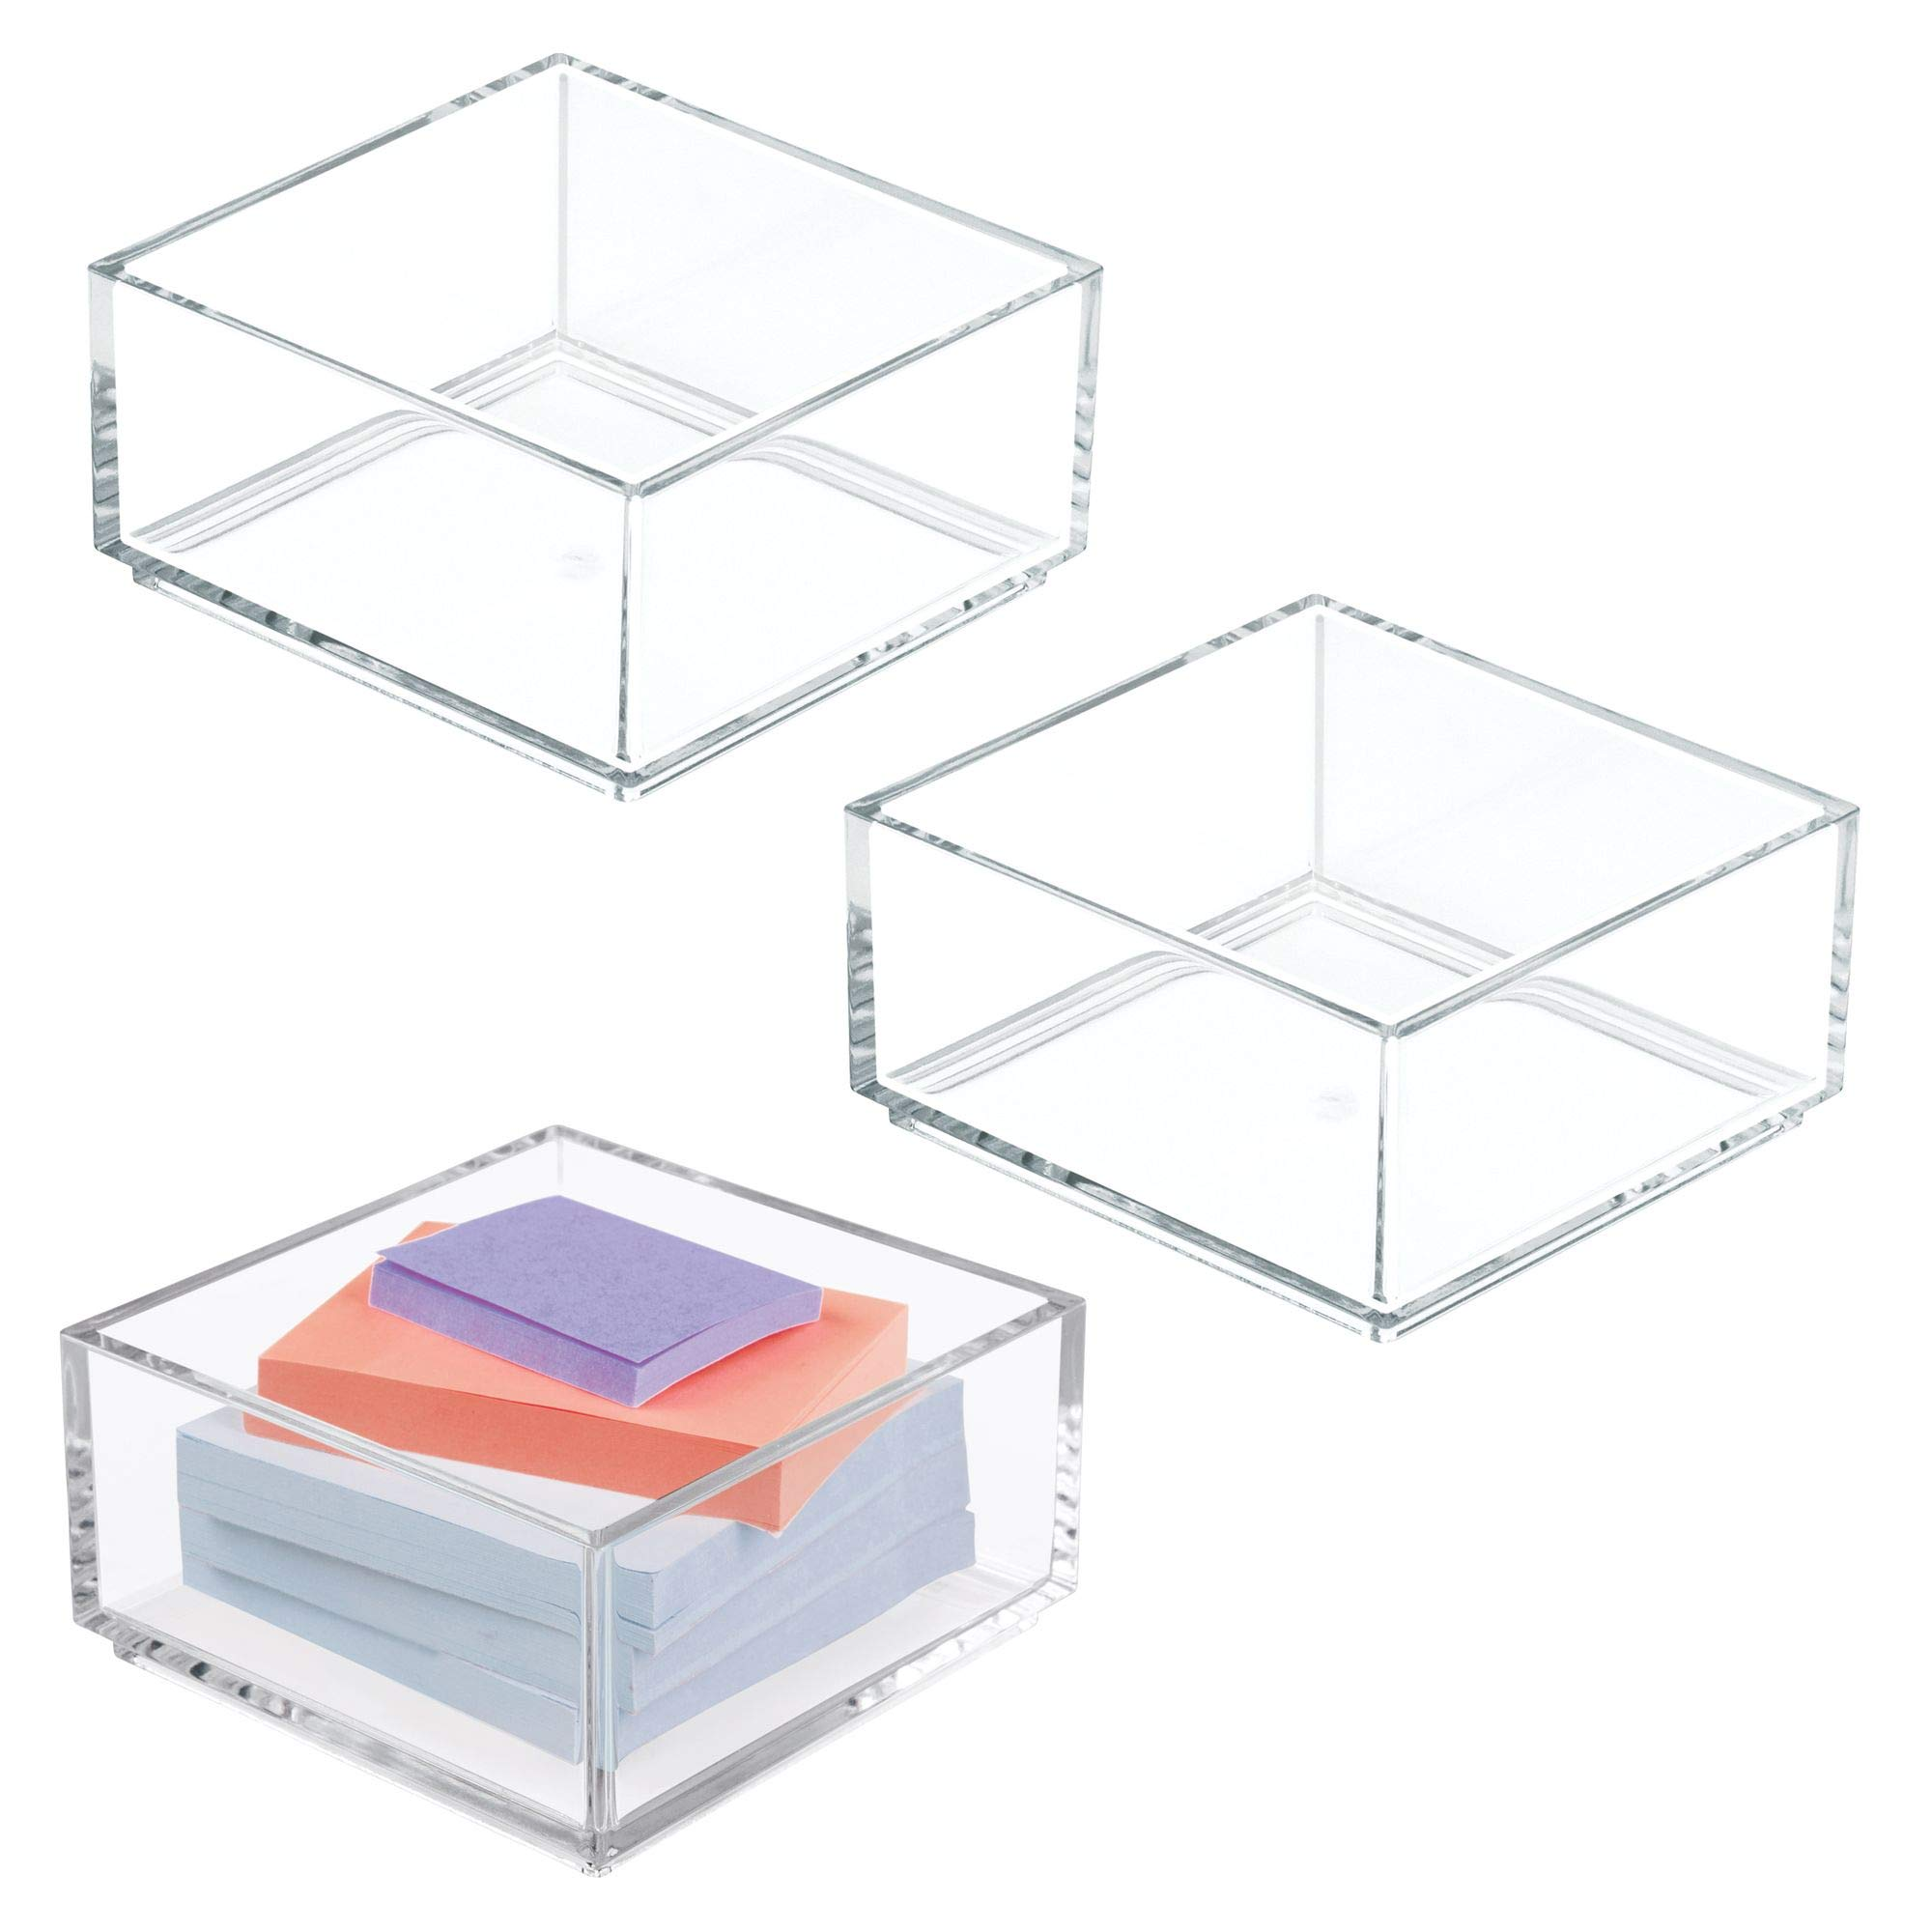 mDesign Stackable Office Supply Plastic Drawer and Desktop Storage Organizers for Sticky Notes, Paper Clips - Pack of 3, Clear